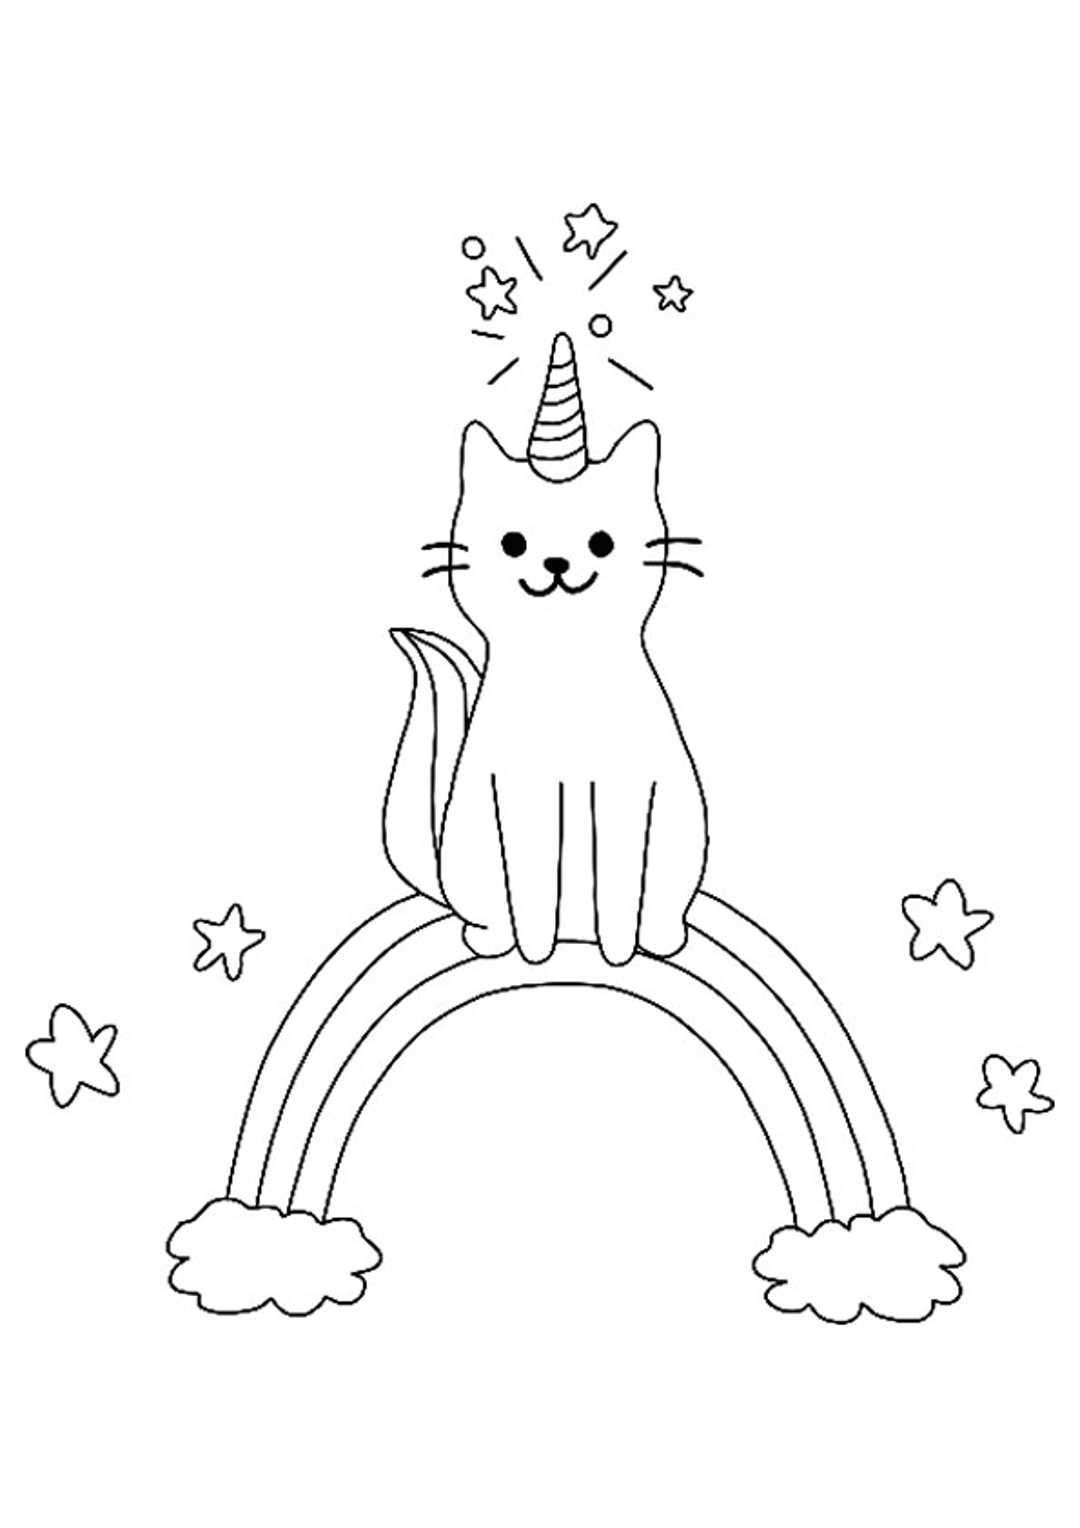 Unicorn Rainbow Coloring Page Unicorn Coloring Pages Mermaid Coloring Pages Birthday Coloring Pages